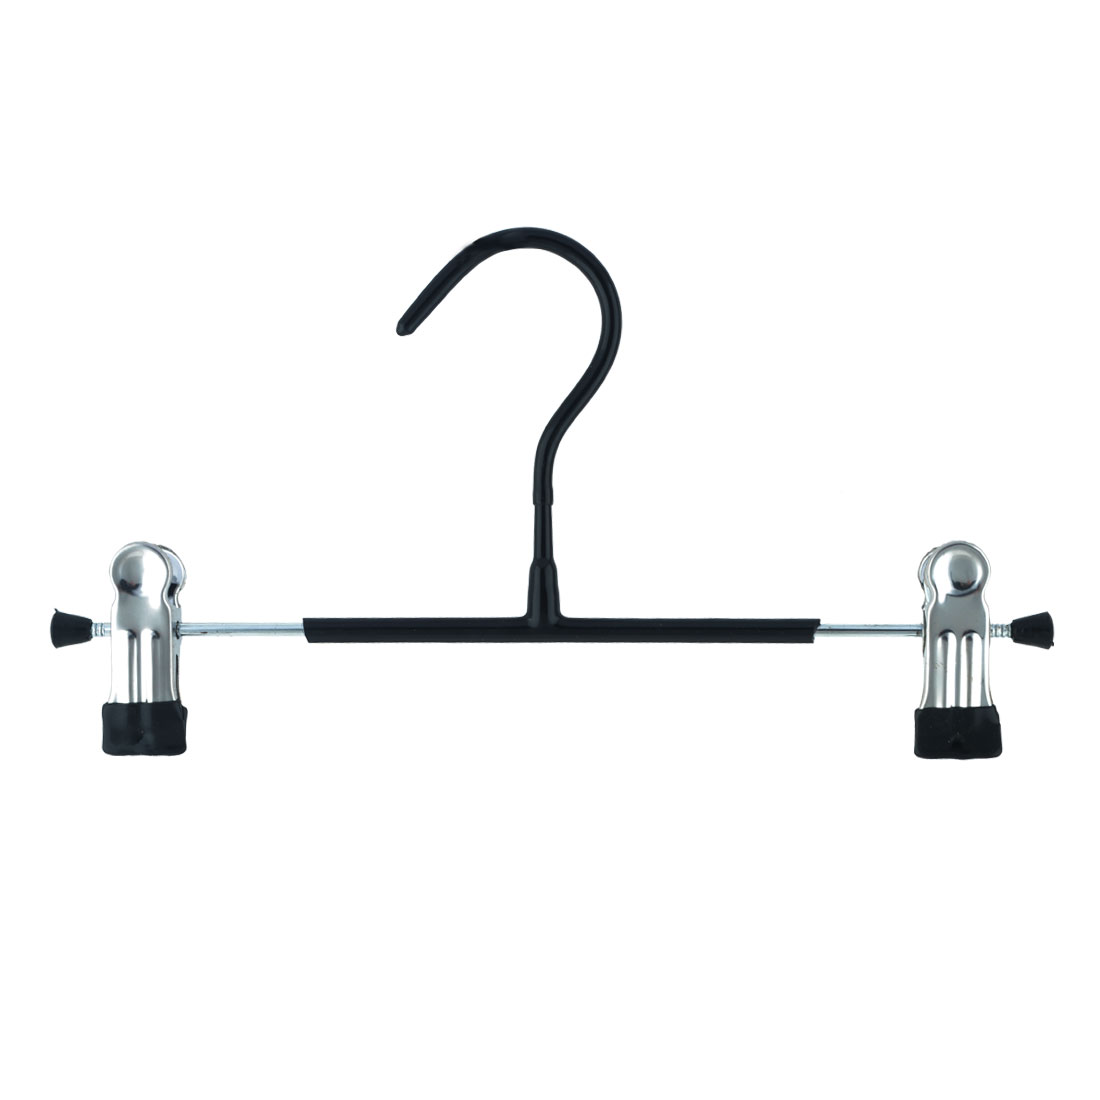 Household Wardrobe Plastic Double Clips Suits Pants Clothes Clothing Hanger Hook Black